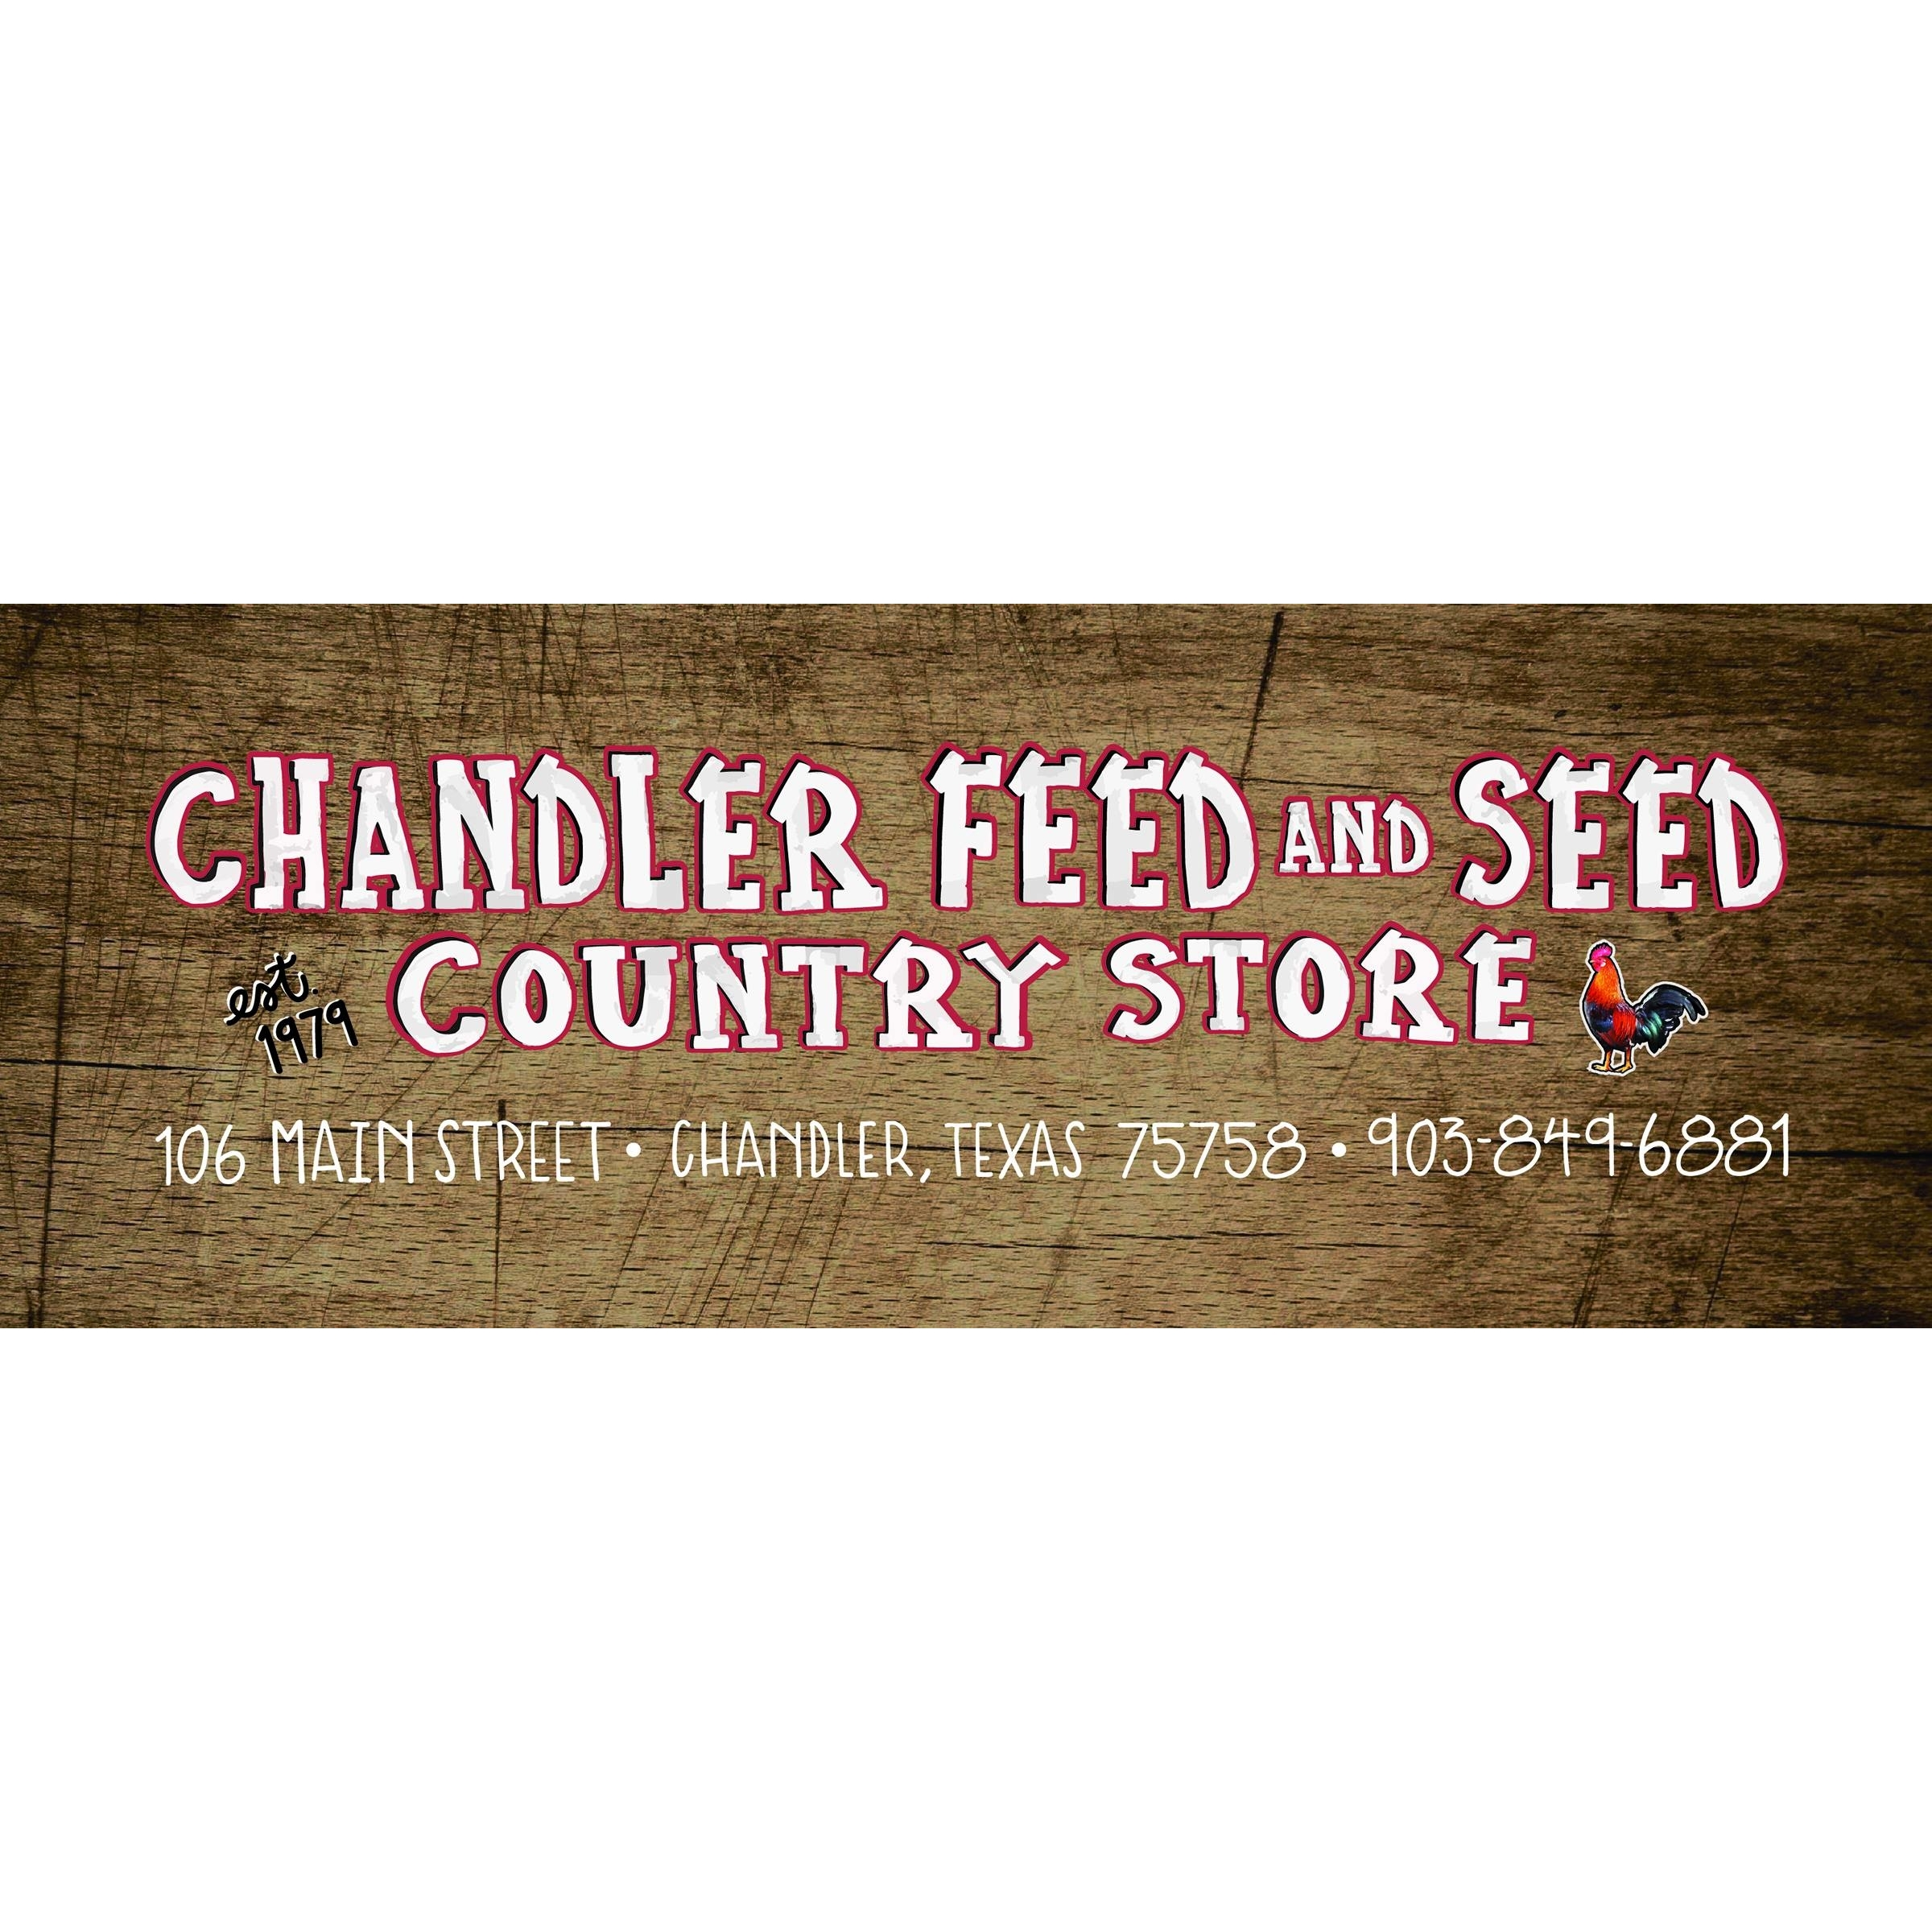 Chandler Feed and Seed Country Store